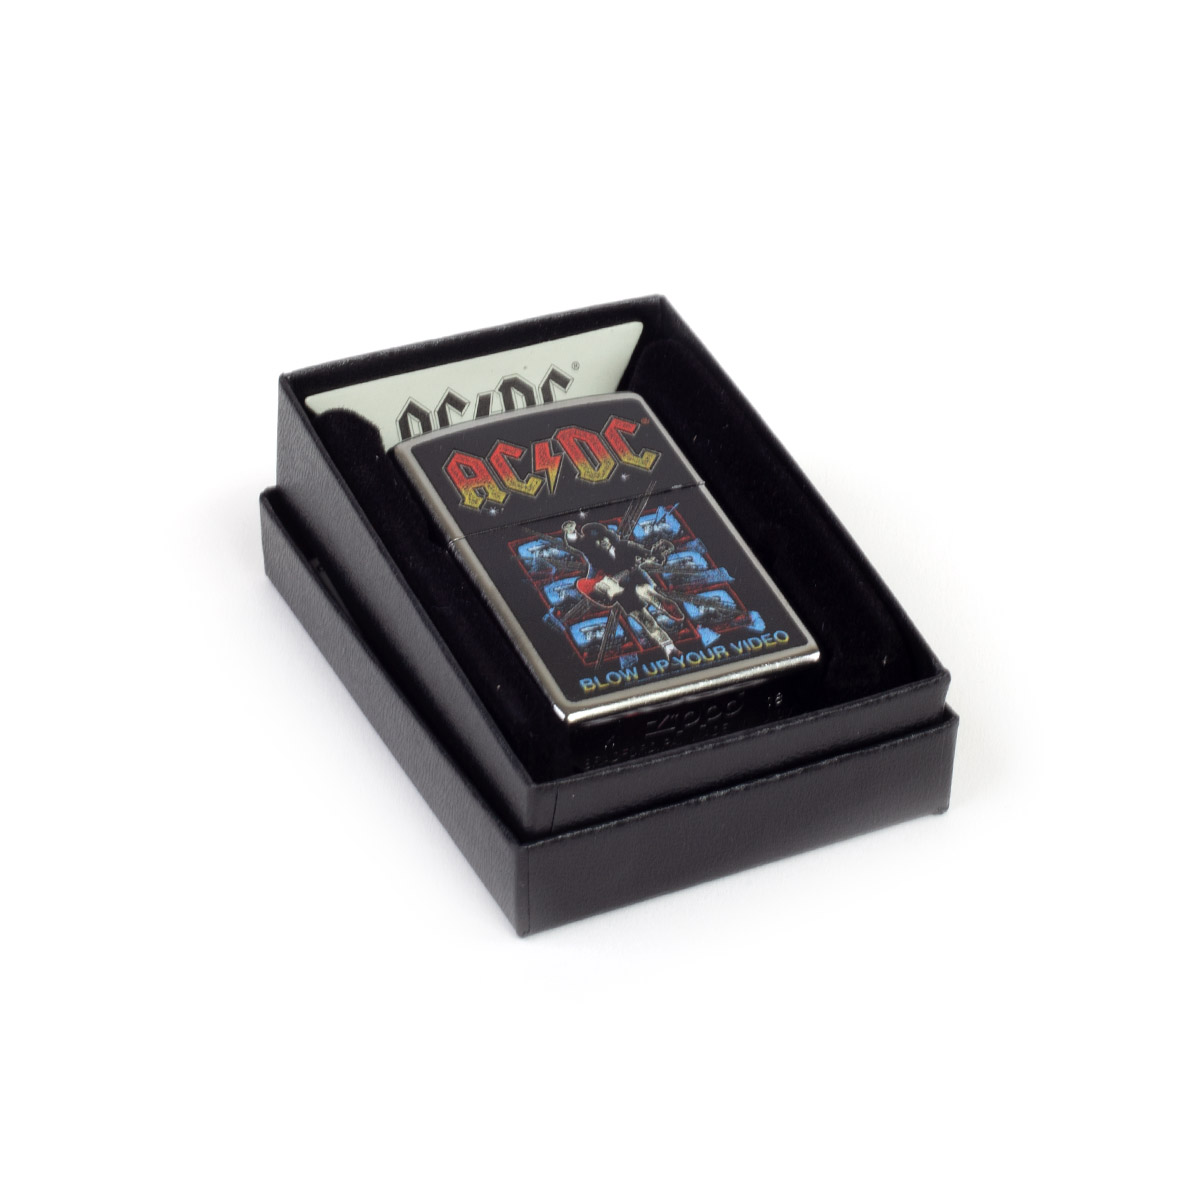 AC/DC Blow Up Your Video Zippo Lighter